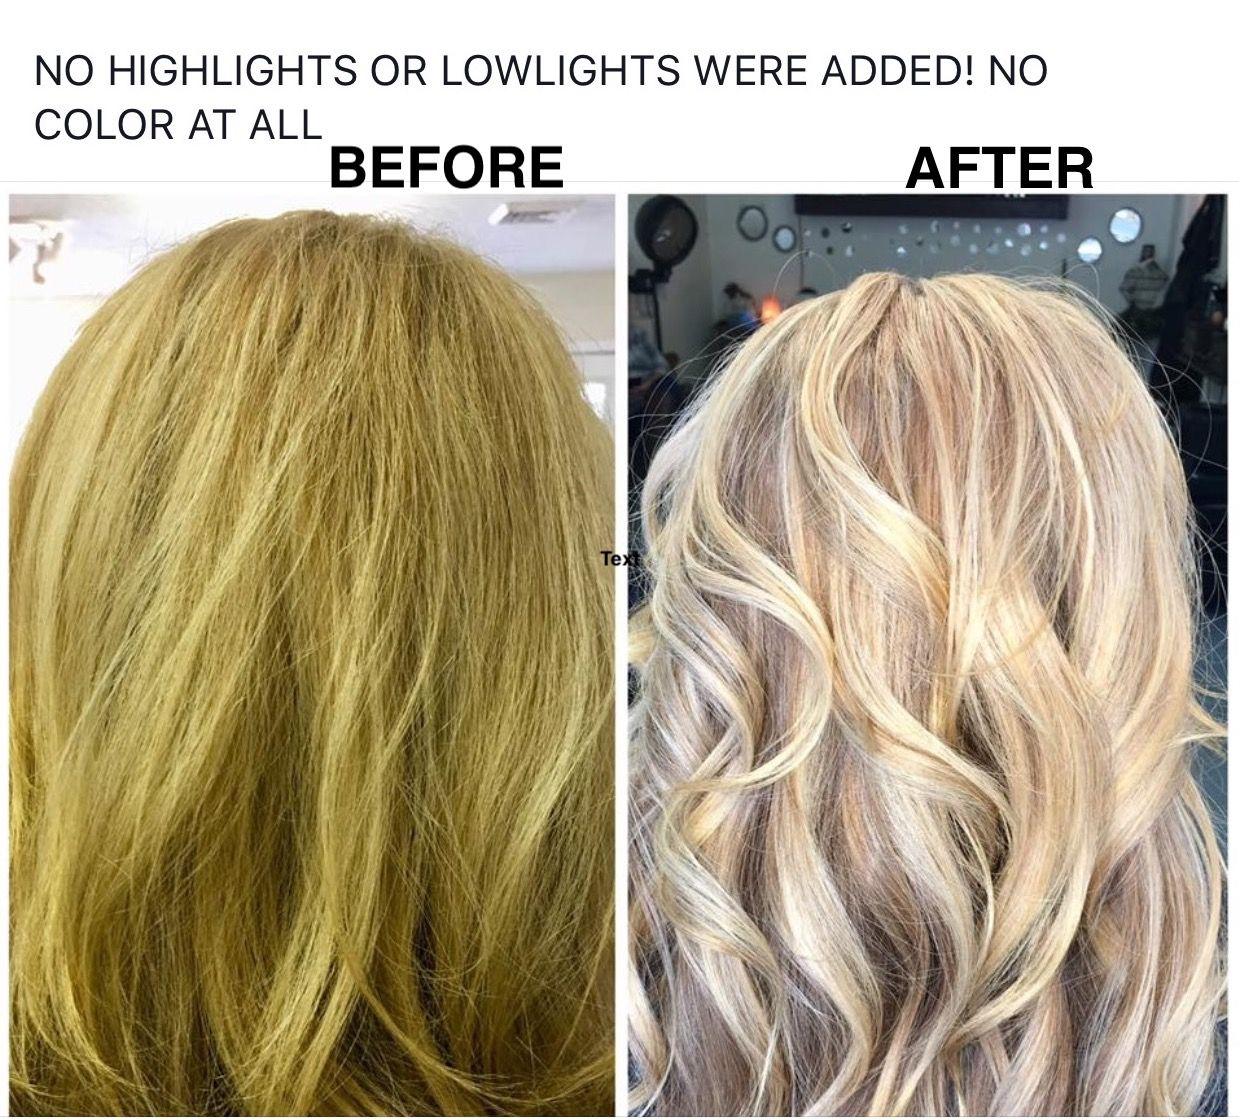 11bcd7701180bb115826294cbb0234b1 - How To Get Rid Of Yellow Hair After Bleaching